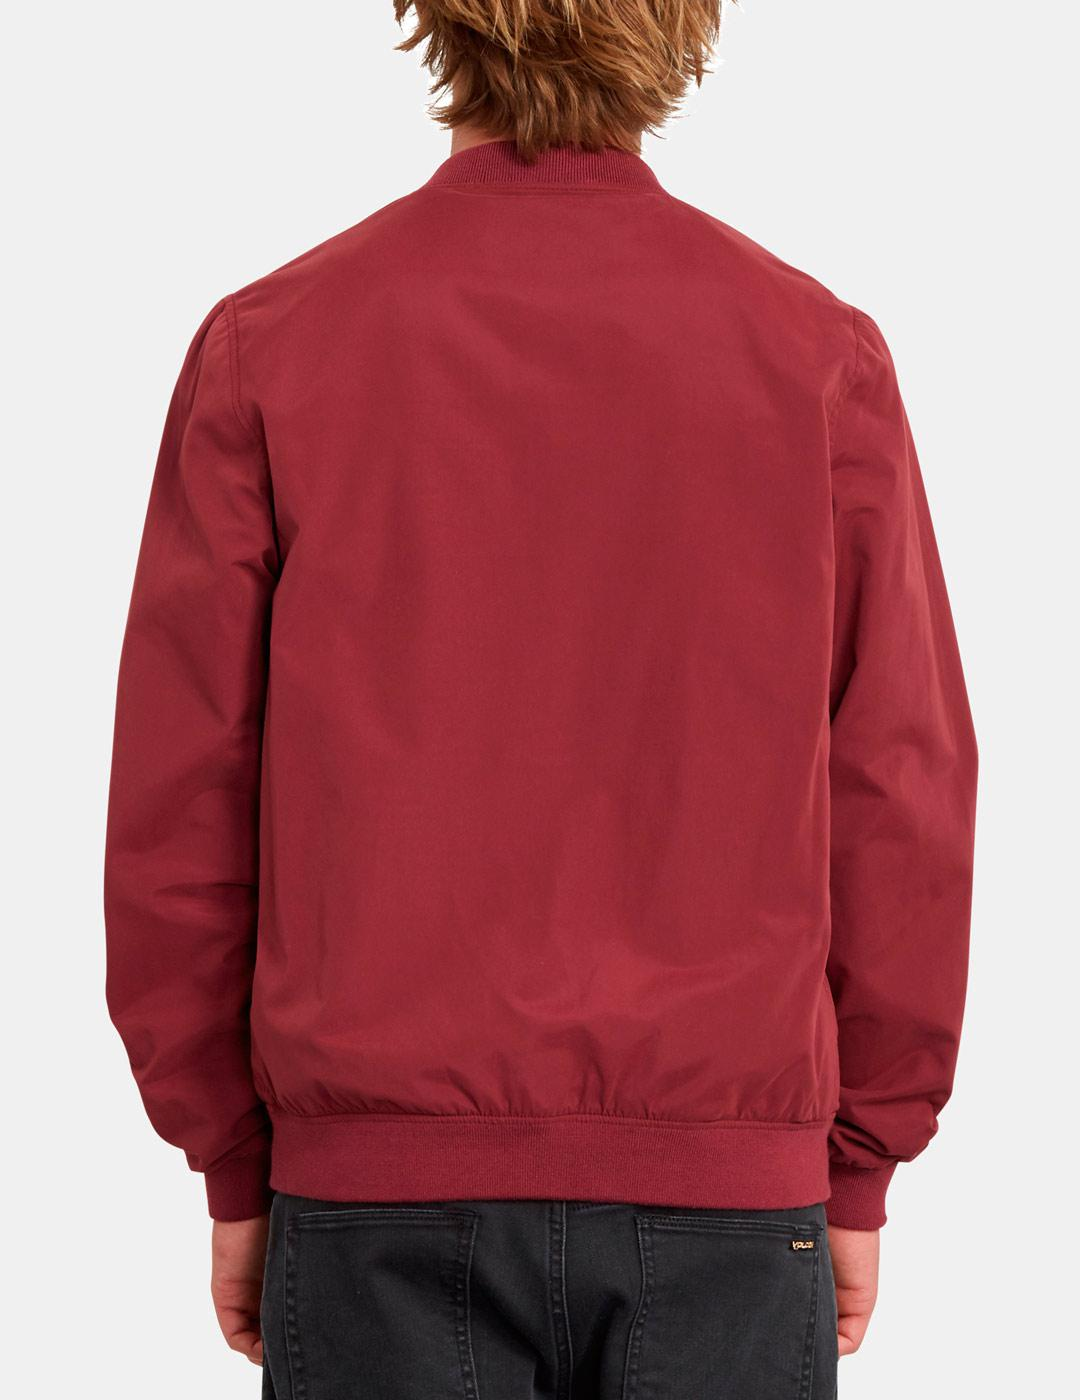 CAZADORA VOLCOM BURNWARD JACKET PIN PINOT